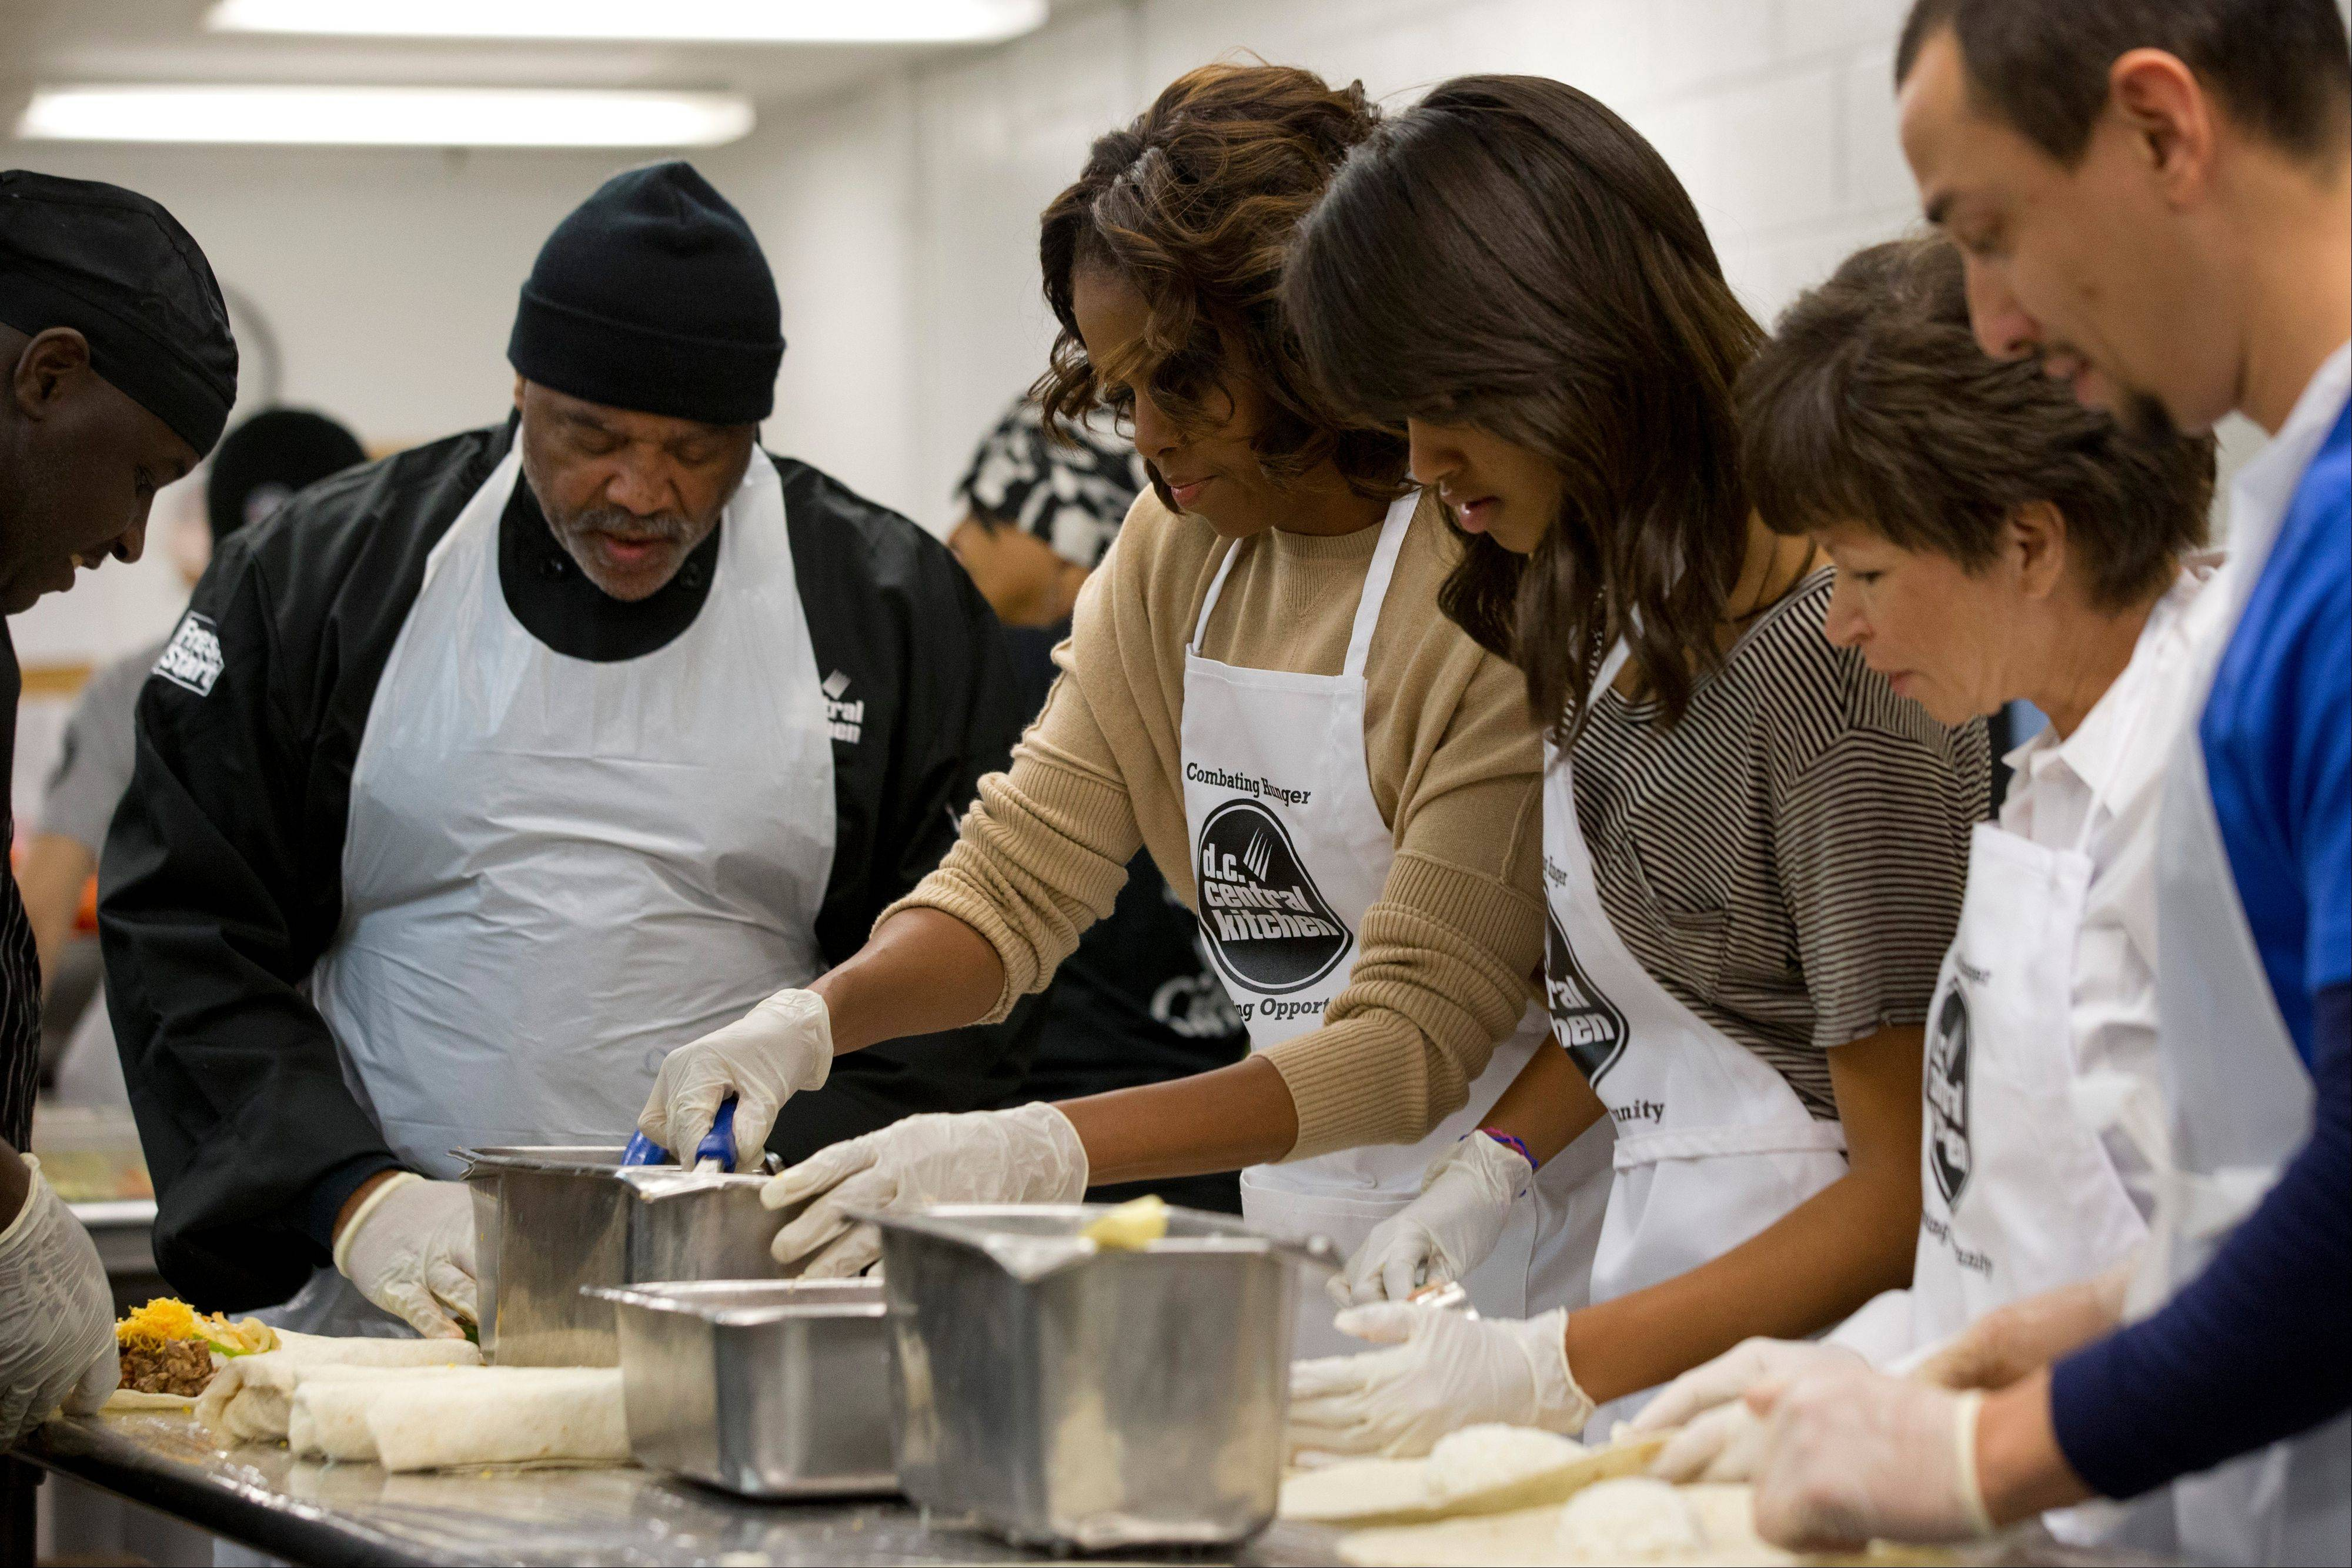 First lady Michelle Obama, center, with daughter Malia Obama and presidential adviser Valerie Jarrett, make burritos at DC Central Kitchen as part of a service project in honor of Martin Luther King, Jr. Day on Monday in Washington. Also helping were President Barack Obama and daughter Sasha Obama.